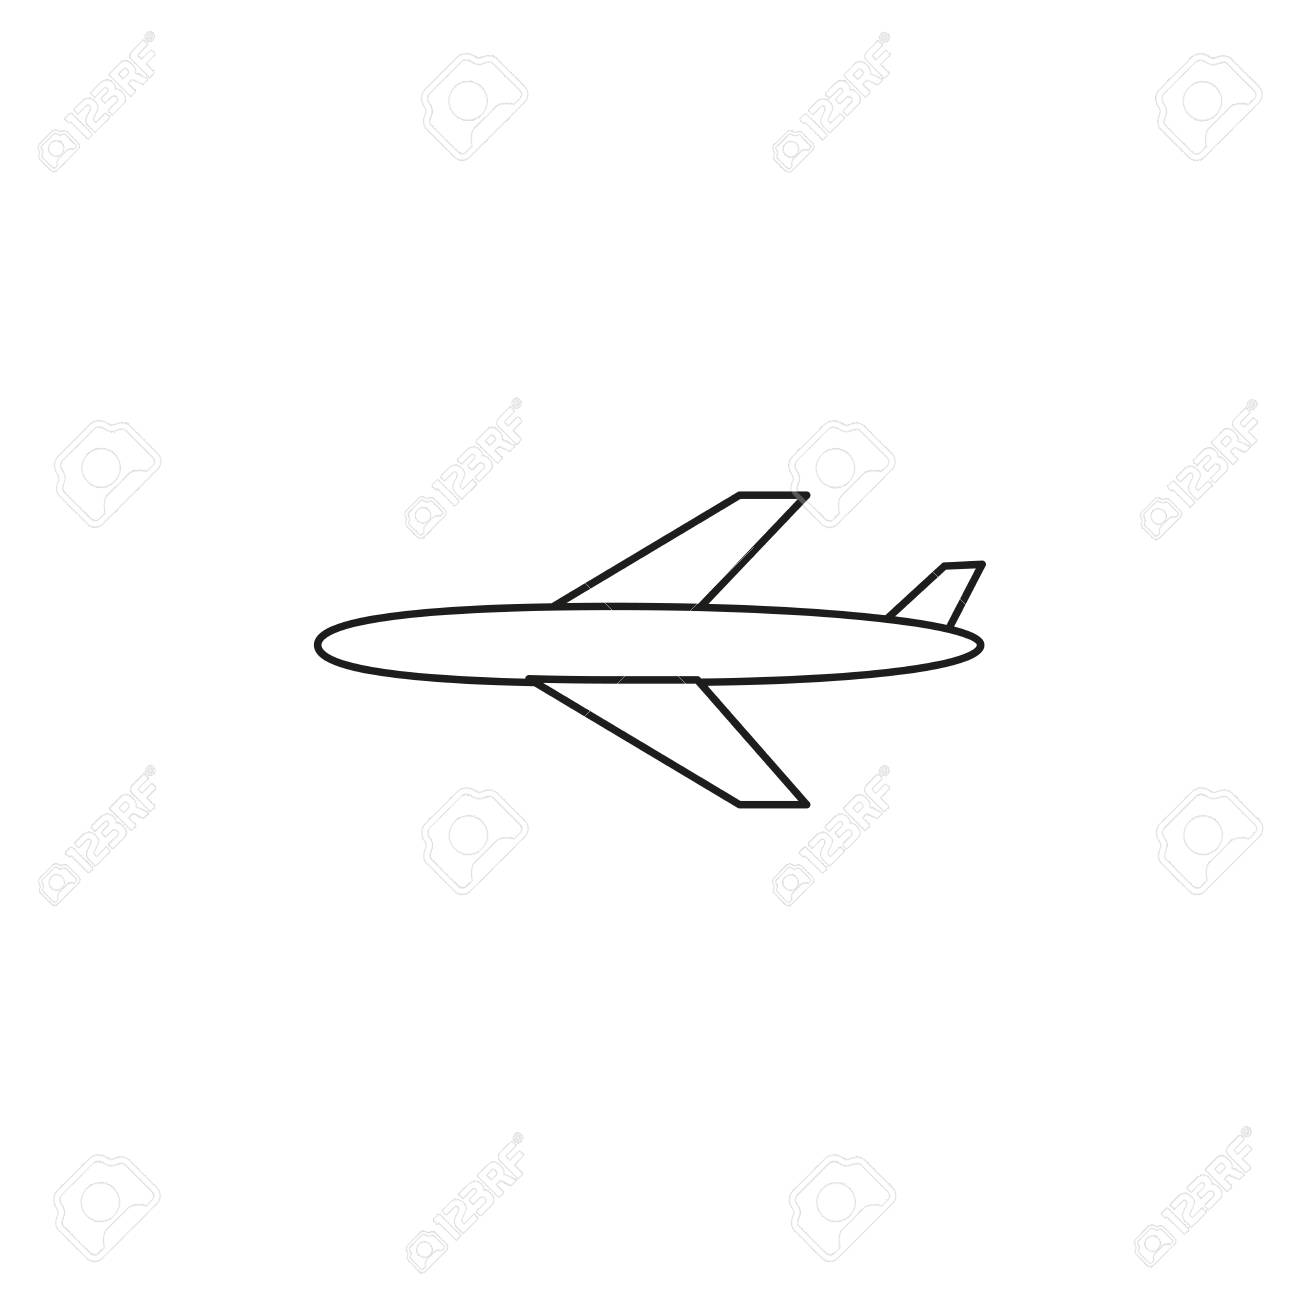 Plane Simple Line Vector Web Graphic Icon Royalty Free Cliparts